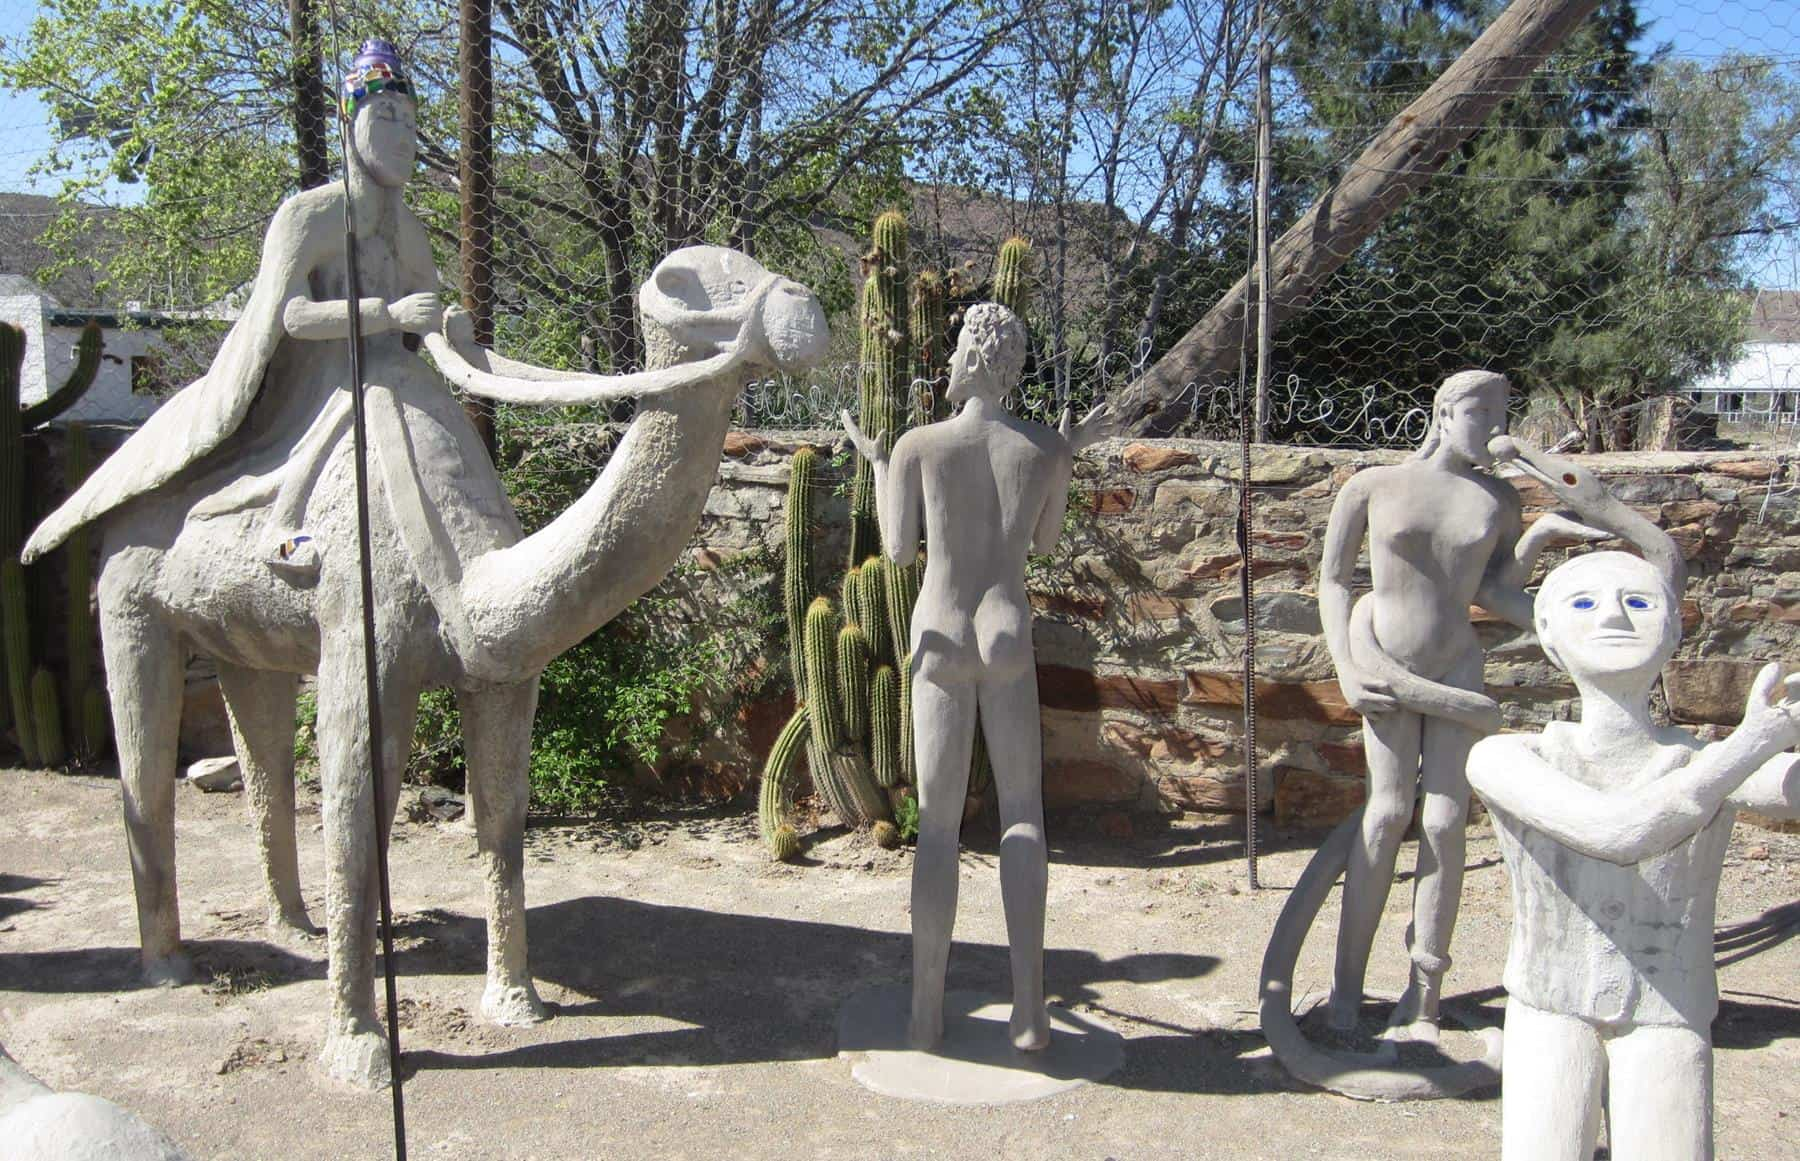 The garden is filled with hundreds of sculptures.